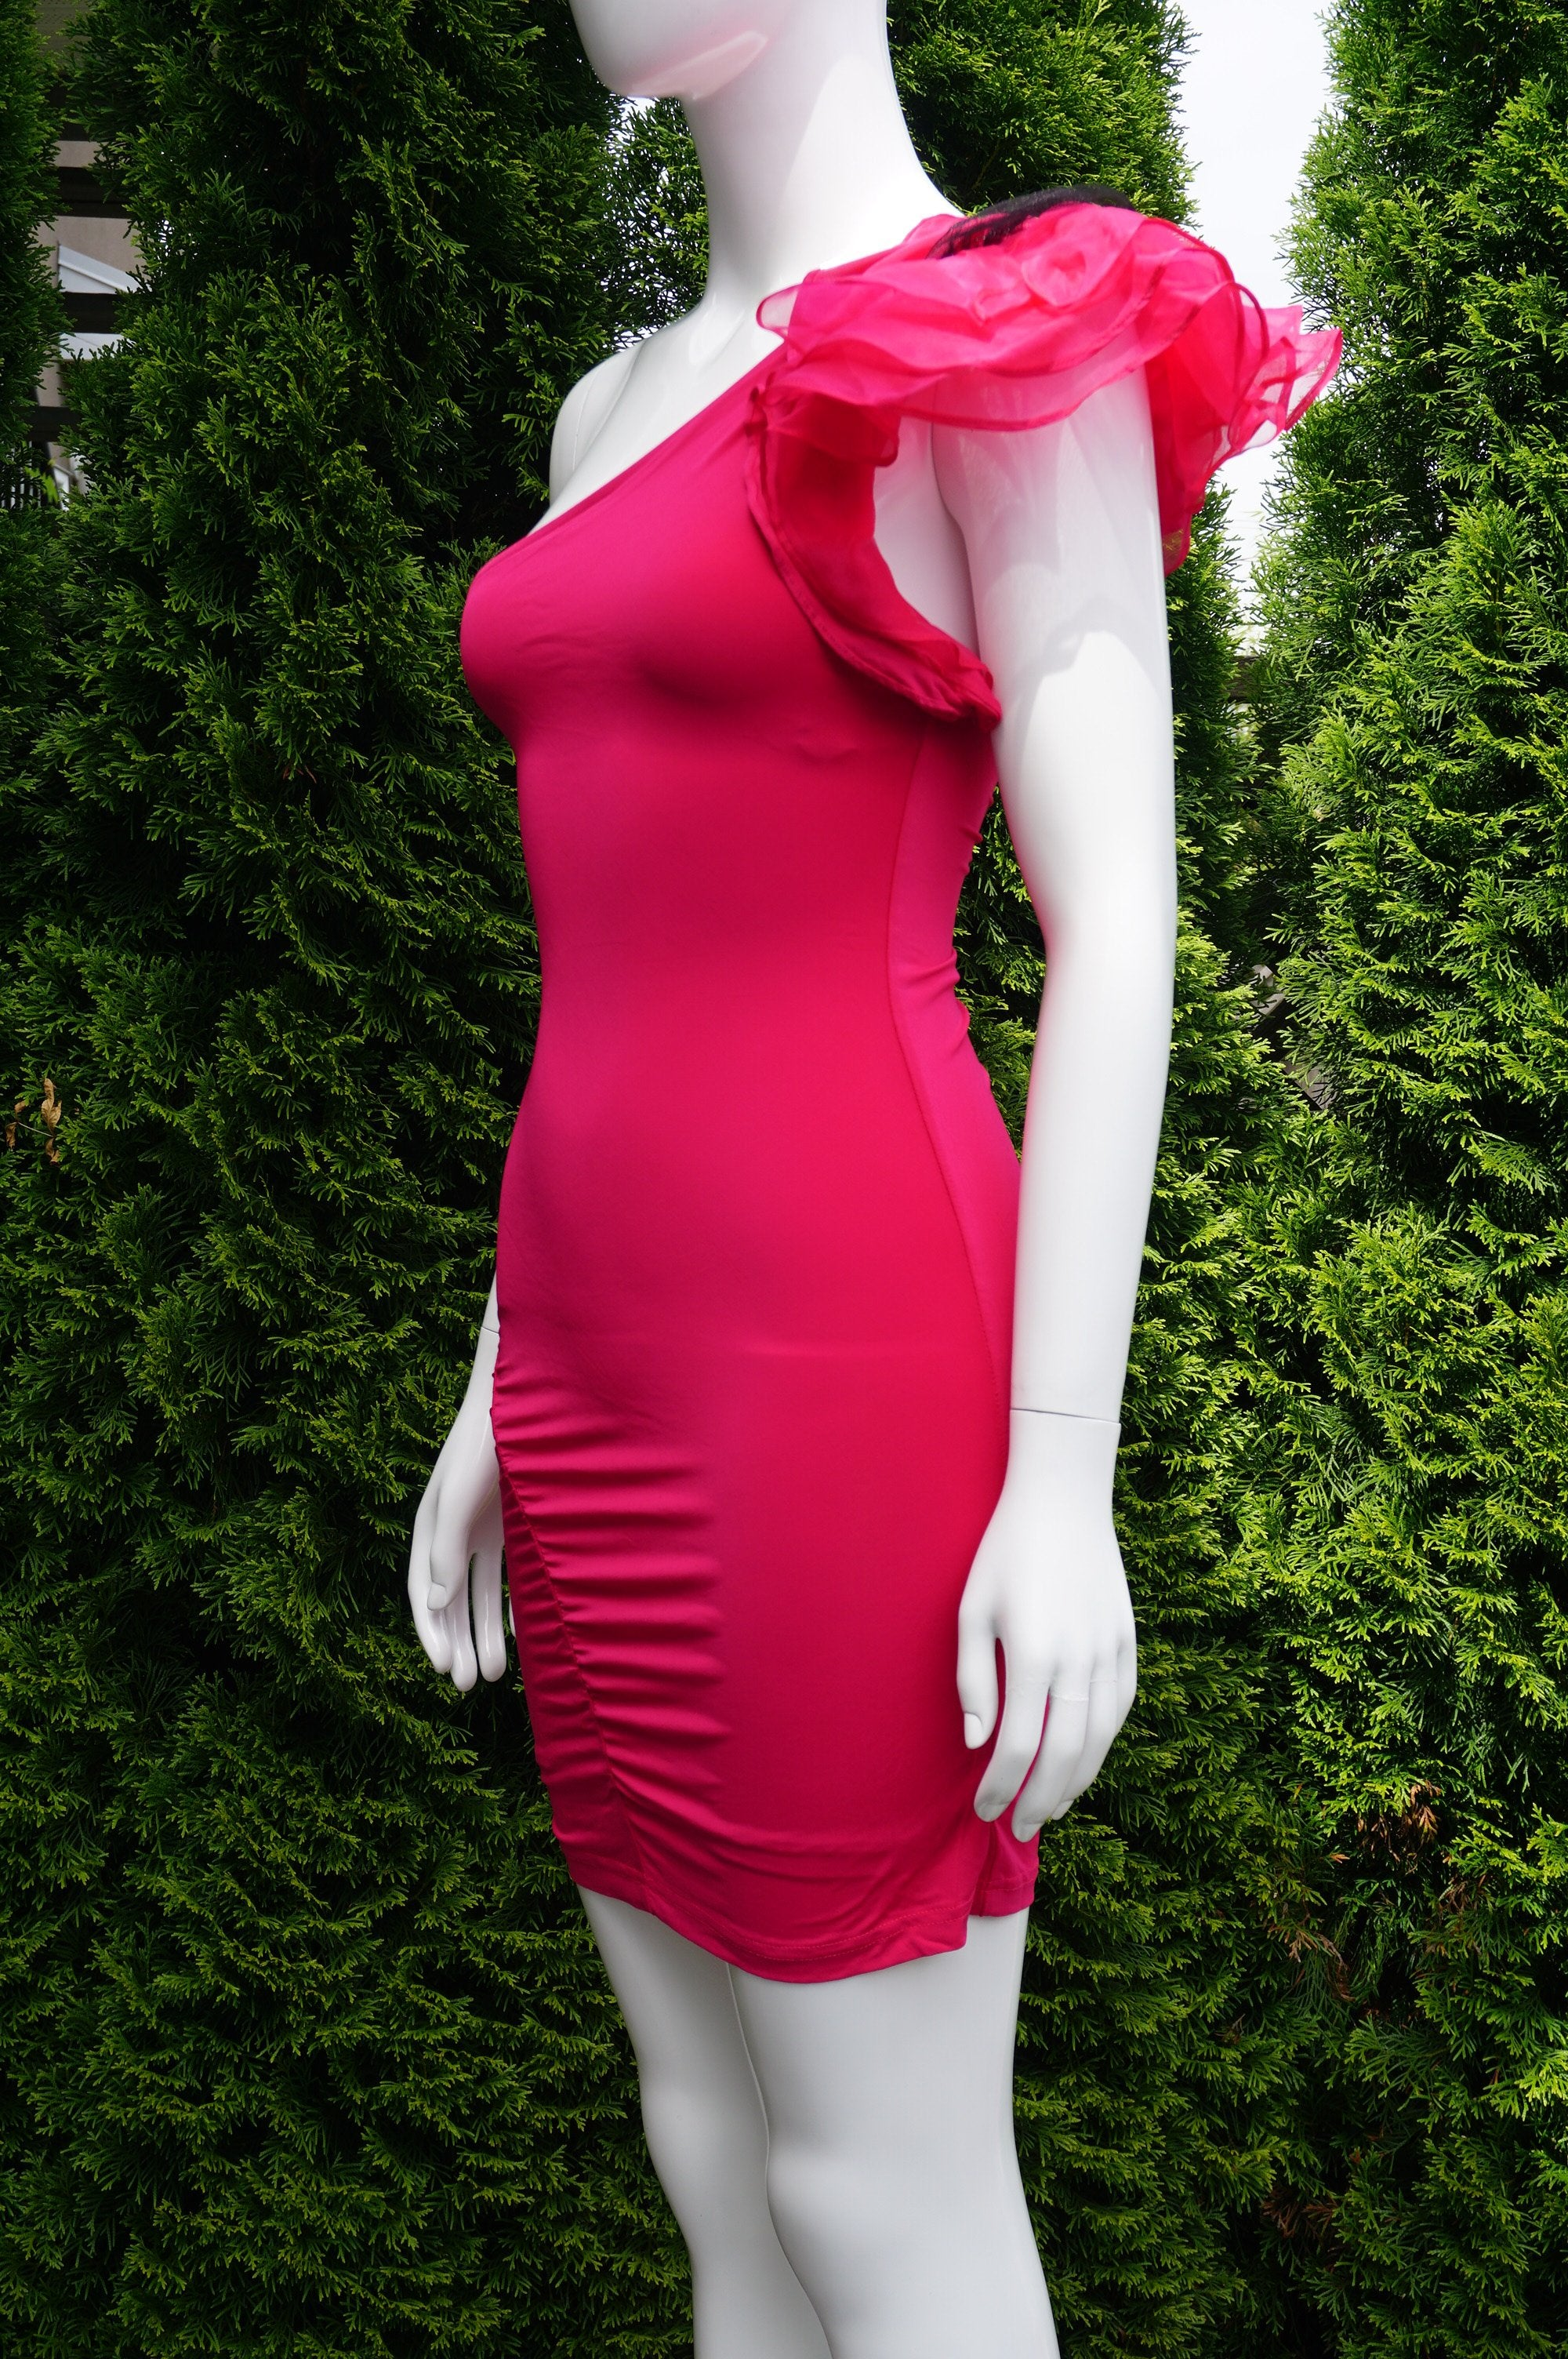 Bebe Asymmetrical 3D Ruffle Flower One Shoulder Stretchy and Flowy Bodycon Dress , This Bebe Solid Hot Pink Asymmetrical Ruffle Bodycon Dress highlights your body contours while accentuating your elegance and femininity.Ruffle Flower One Shoulder Solid Pink Asymmetrical Bodycon Dress